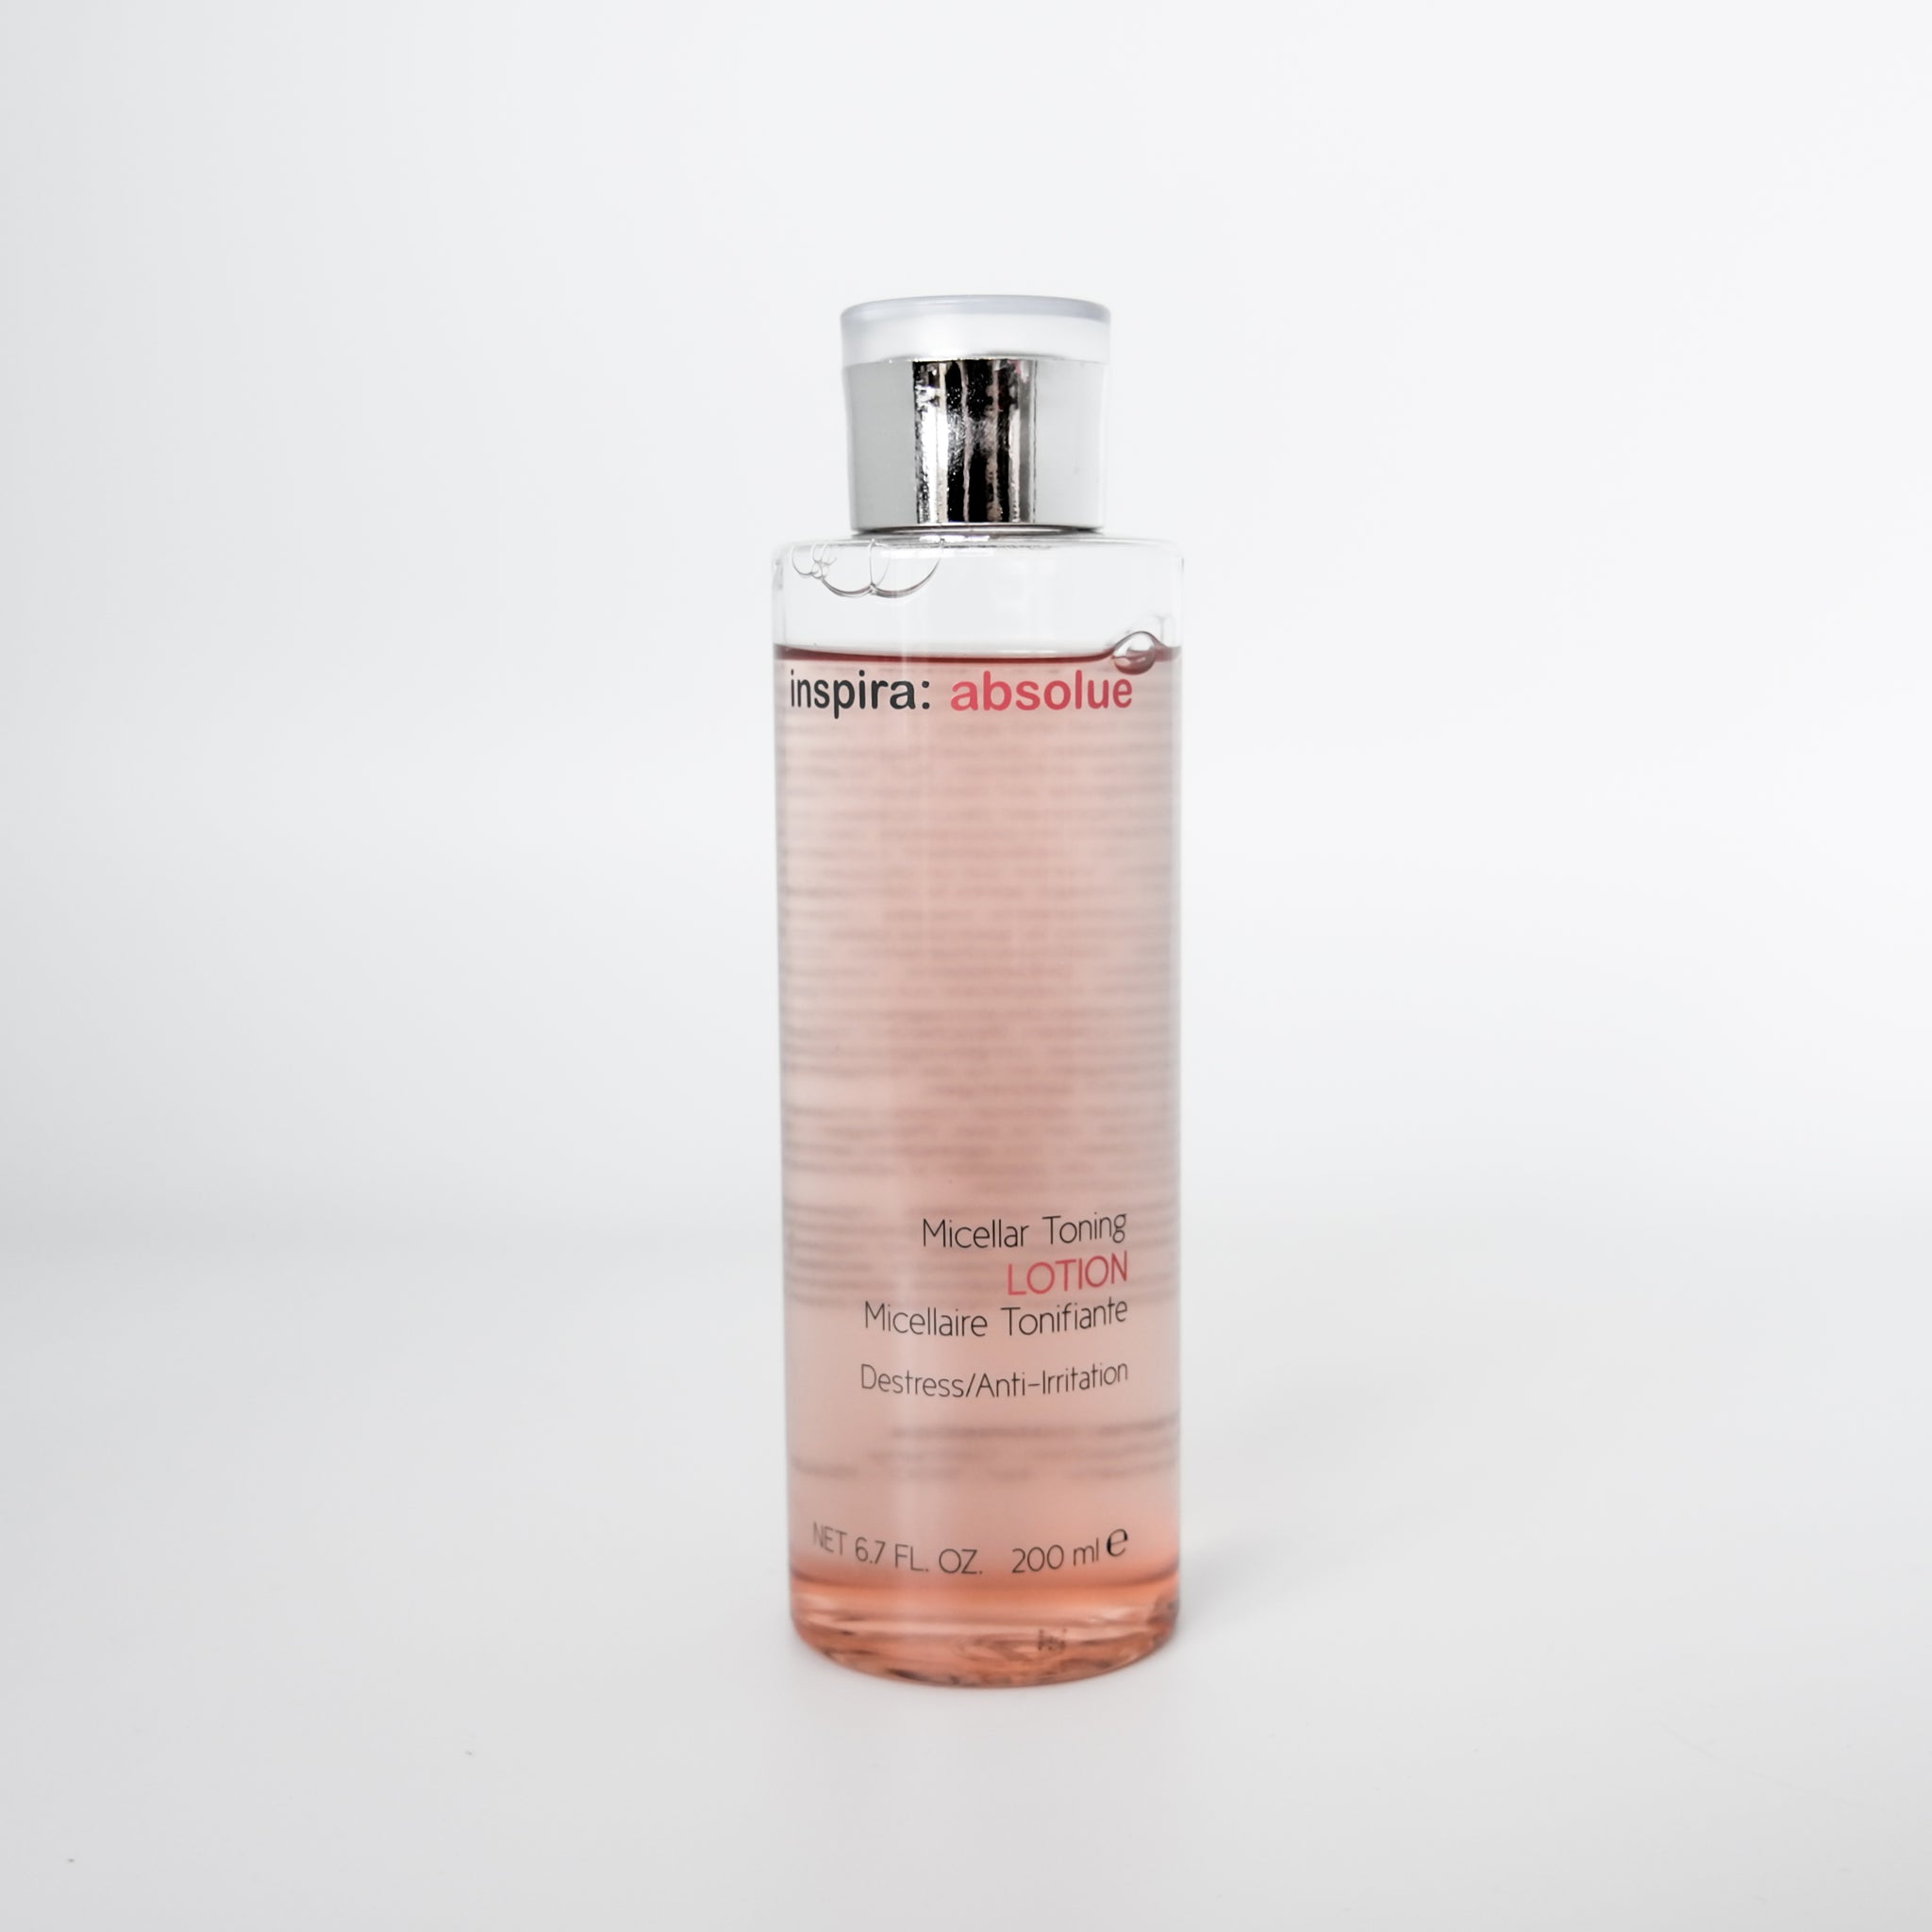 inspira:absolue Micellar Toning Lotion, Toners, Inspira Absolue - Astrid Wylde